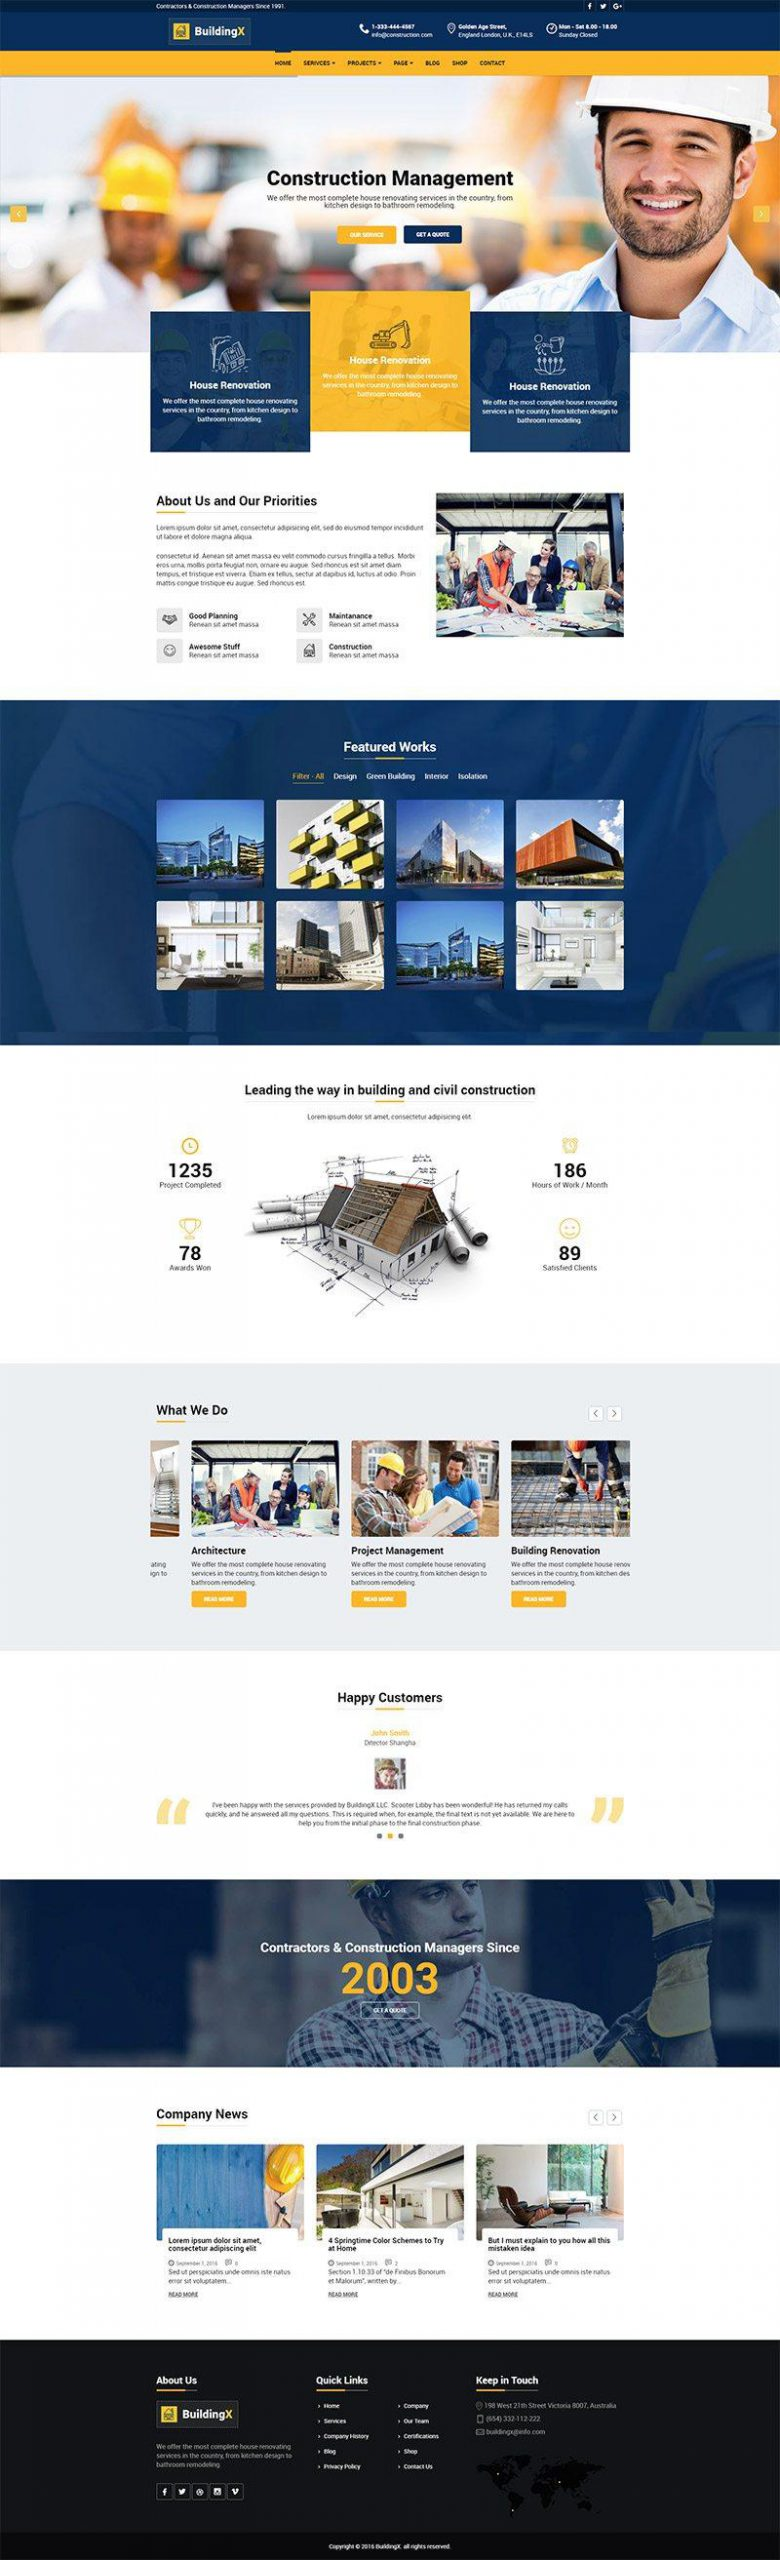 Giao diện website doanh nghiệp BuildingX